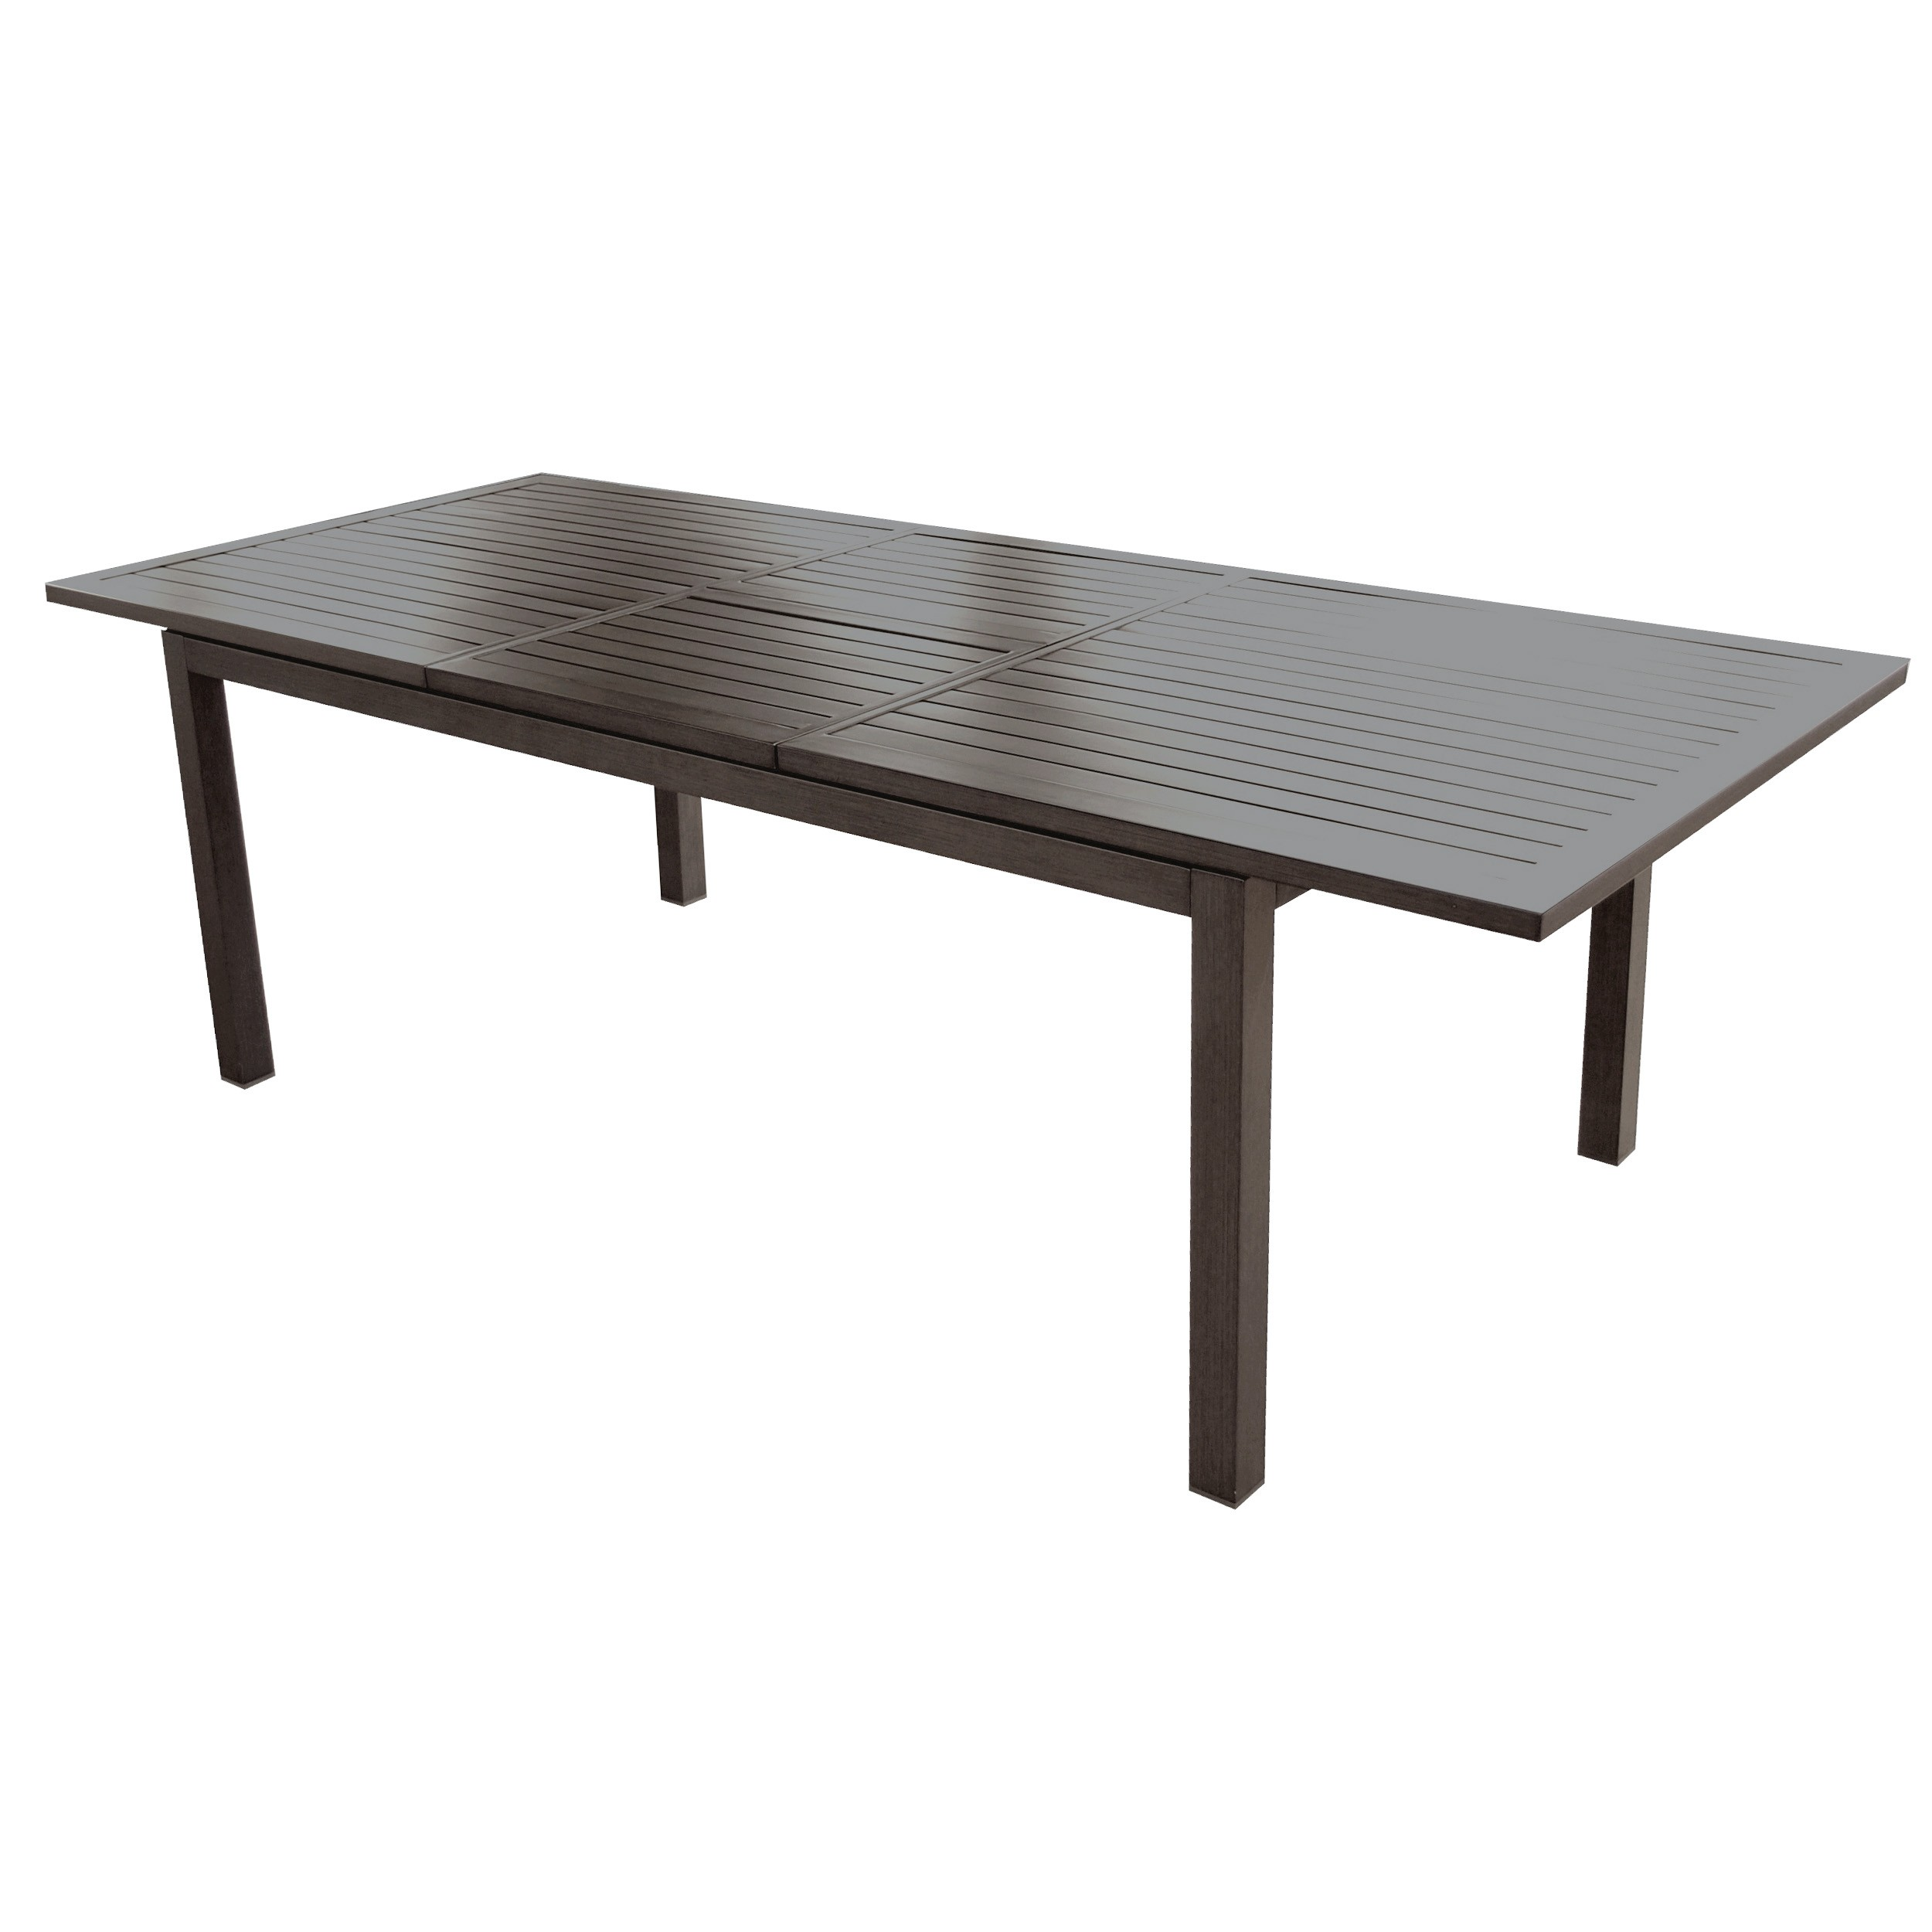 table de jardin extensible 240 cm mahana taupe achetez On les grandes tablees table extensible